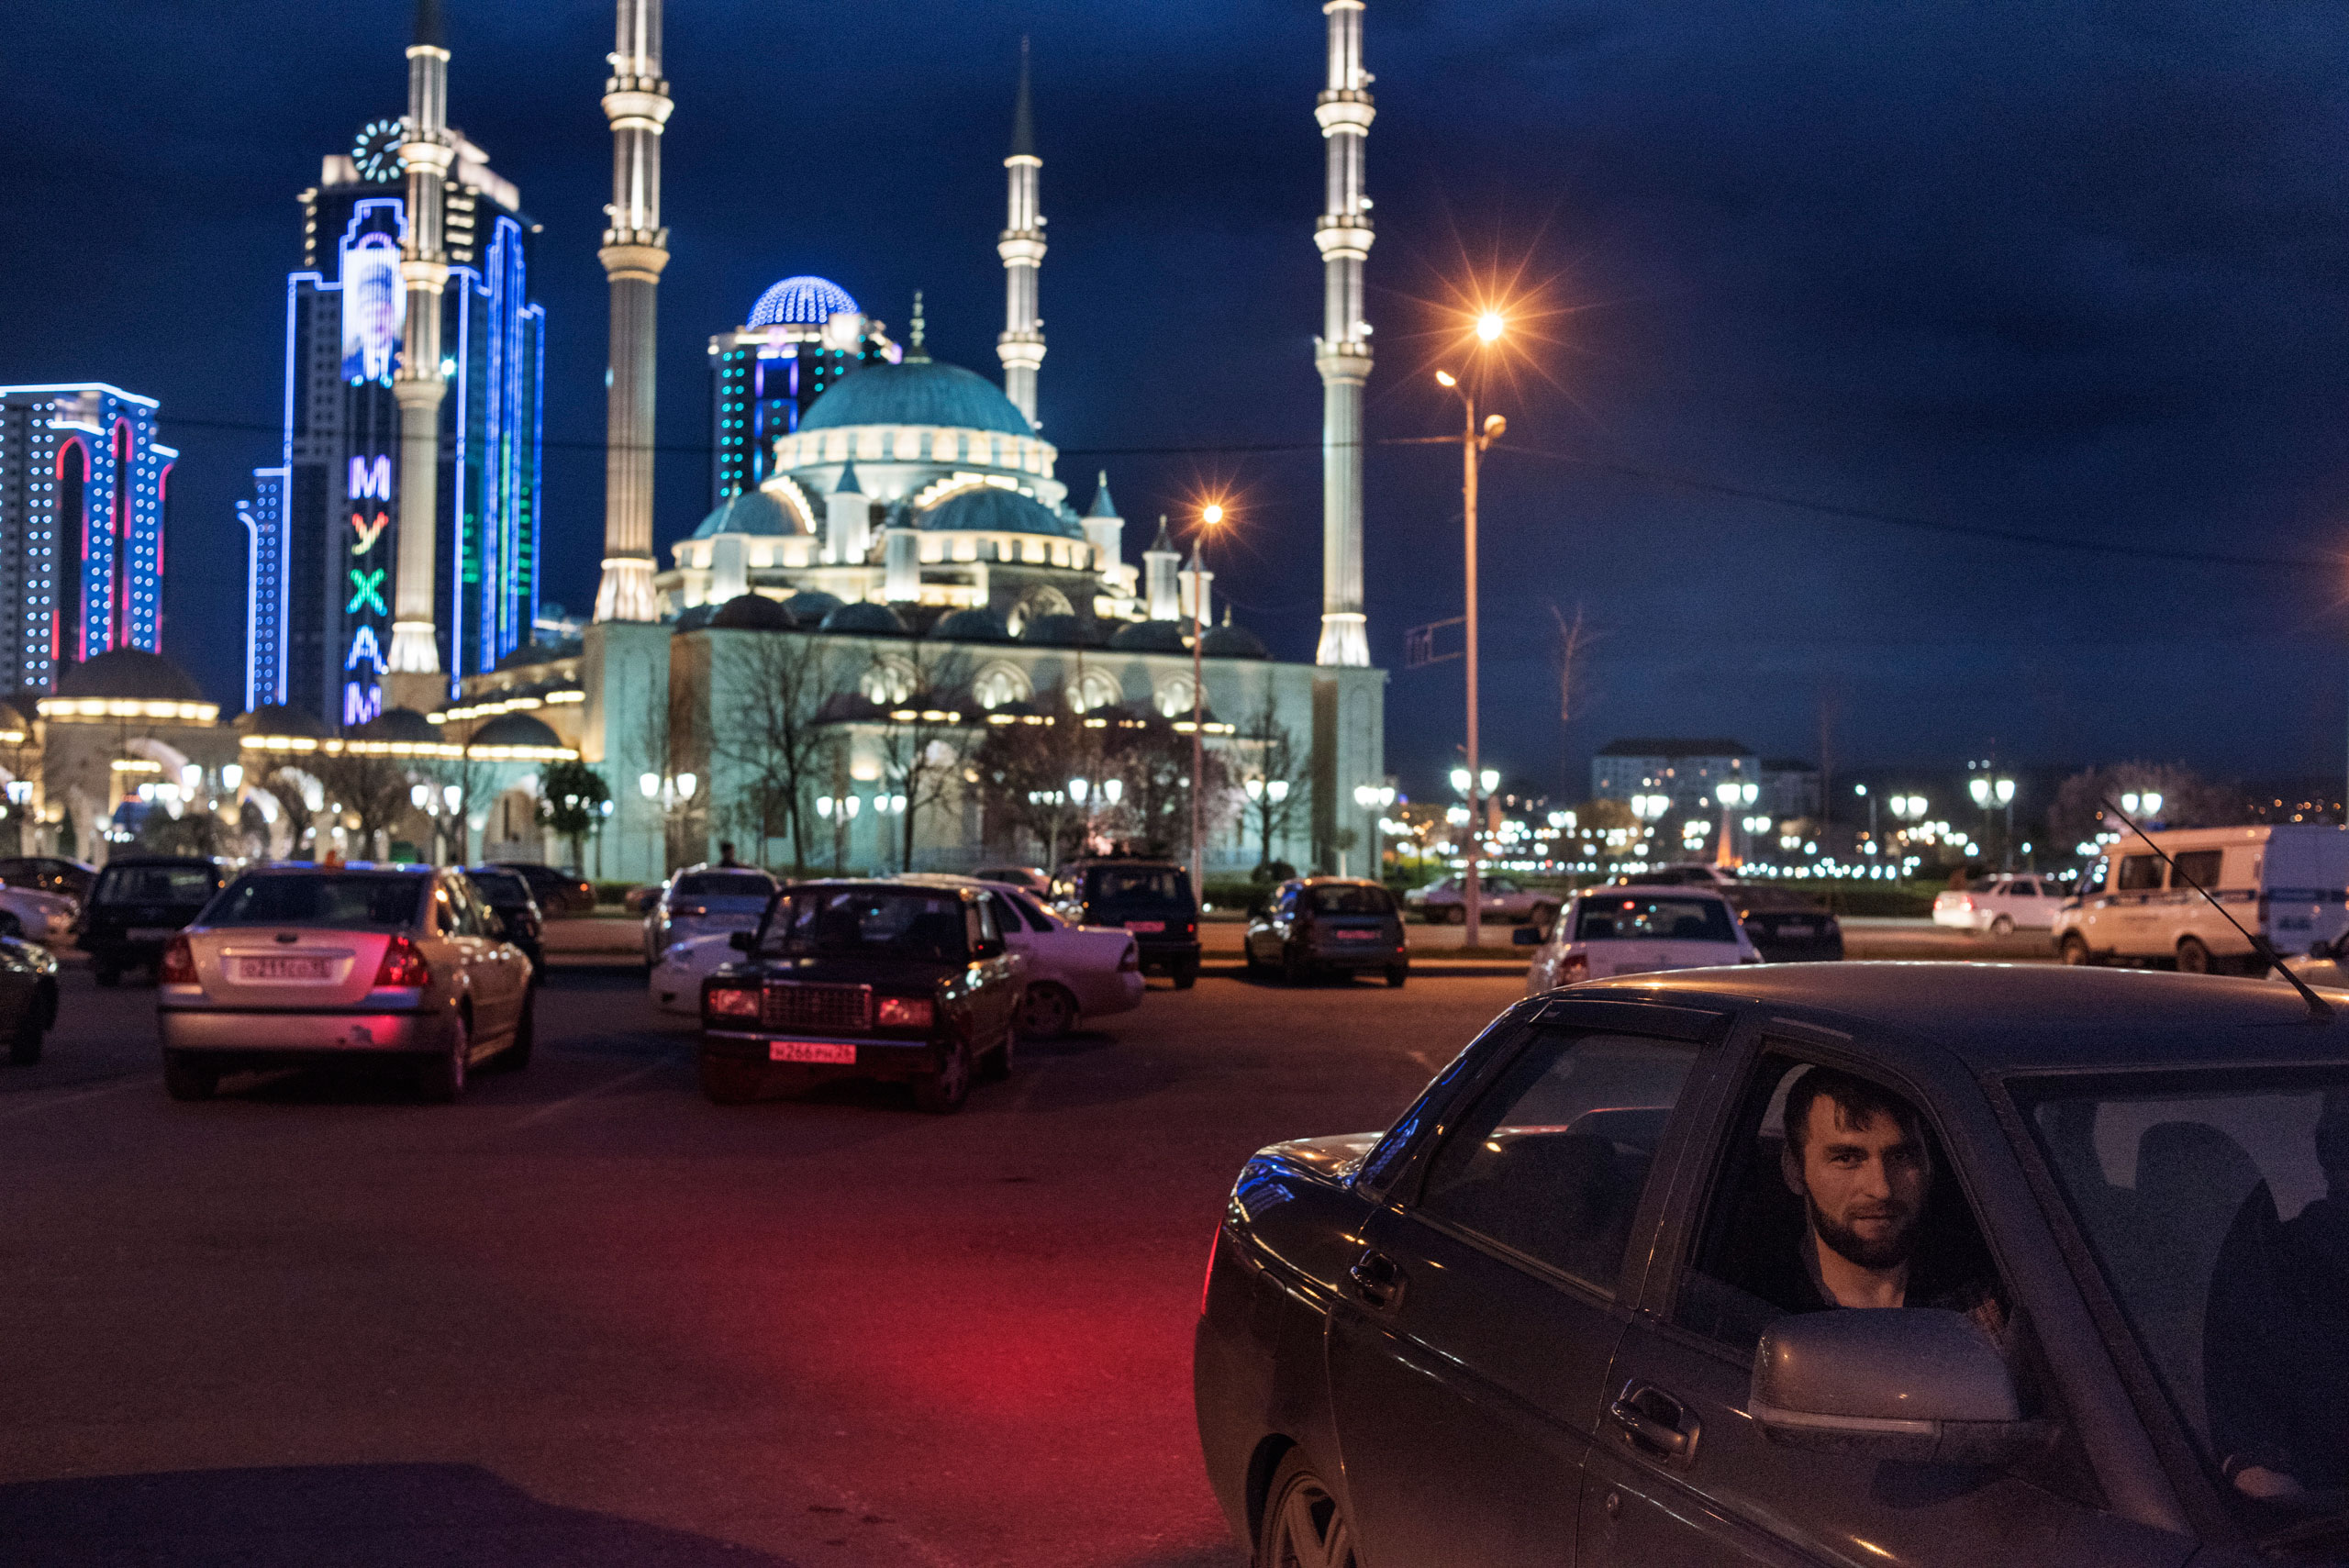 Worshipers leave evening prayer at the Heart of Chechnya Mosque in Grozny, April 2015.